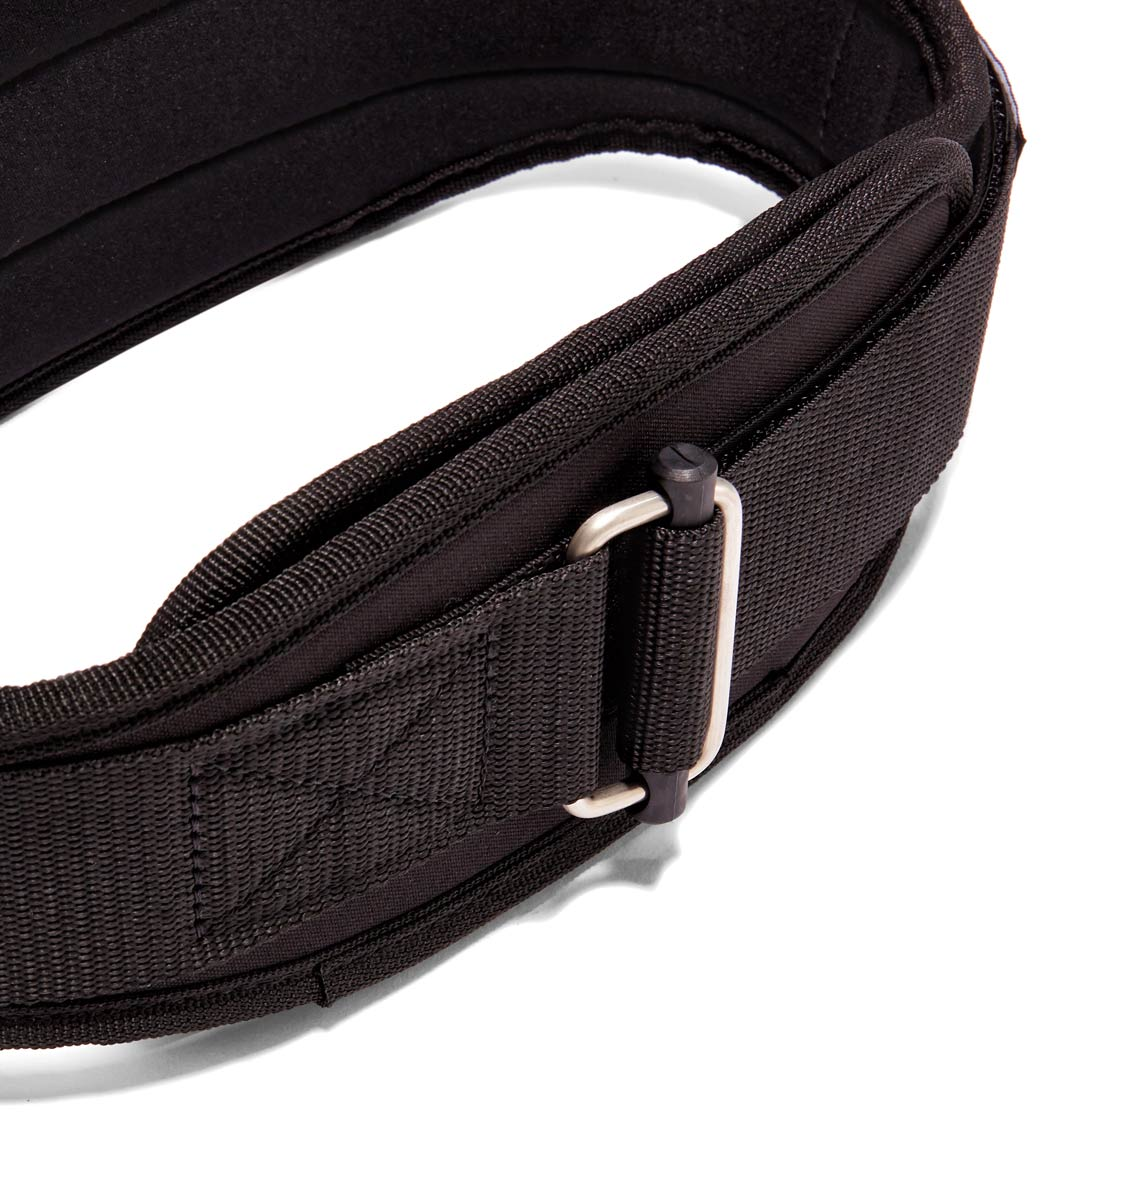 2004 Schiek Contour Weight Lifting Belt Black Buckle